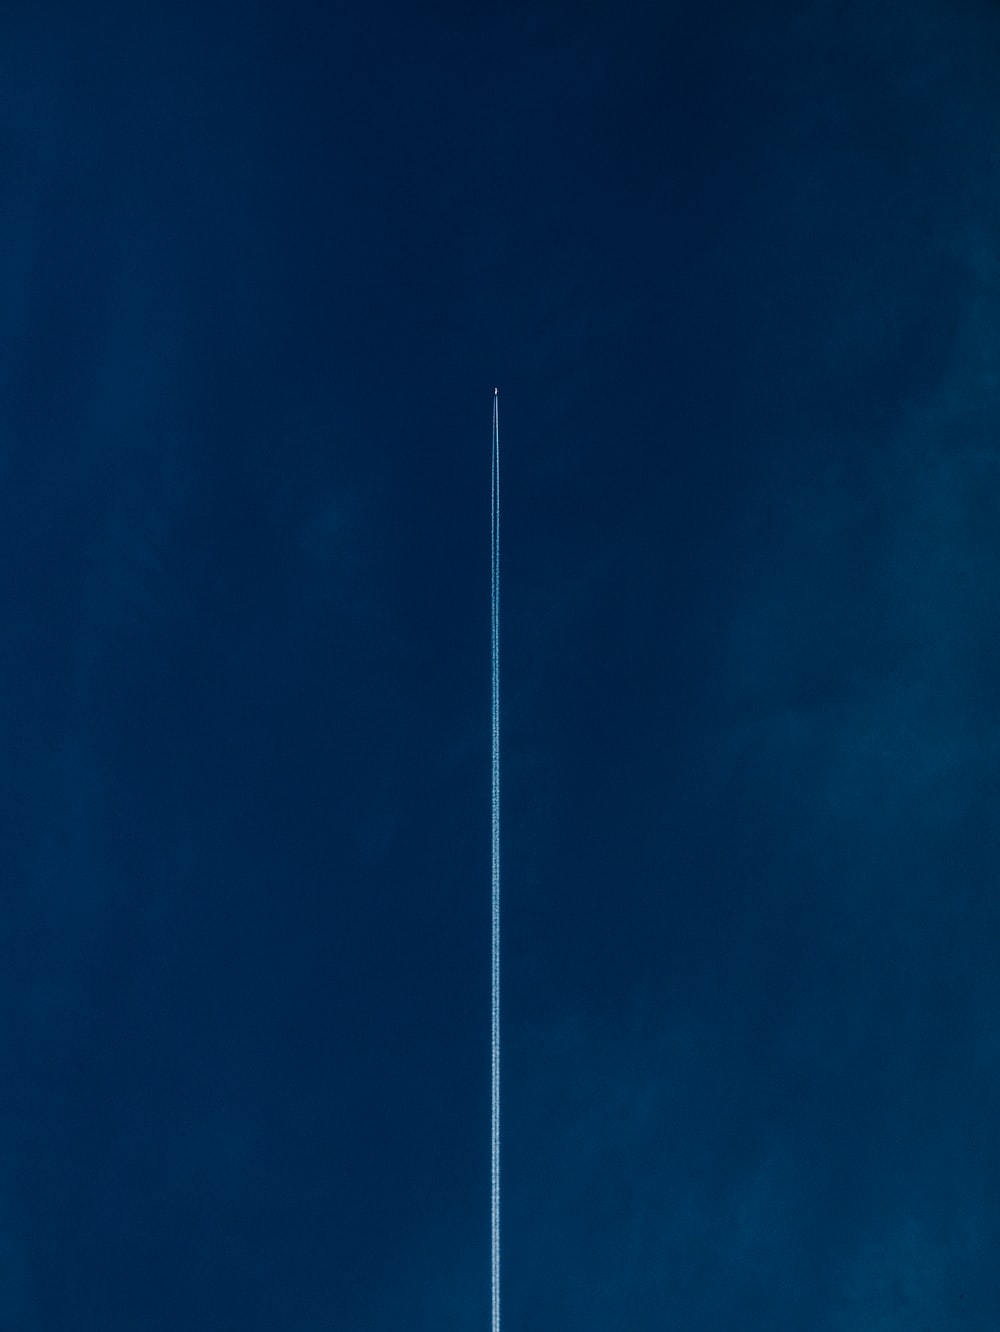 aircraft with line of air on blue sky